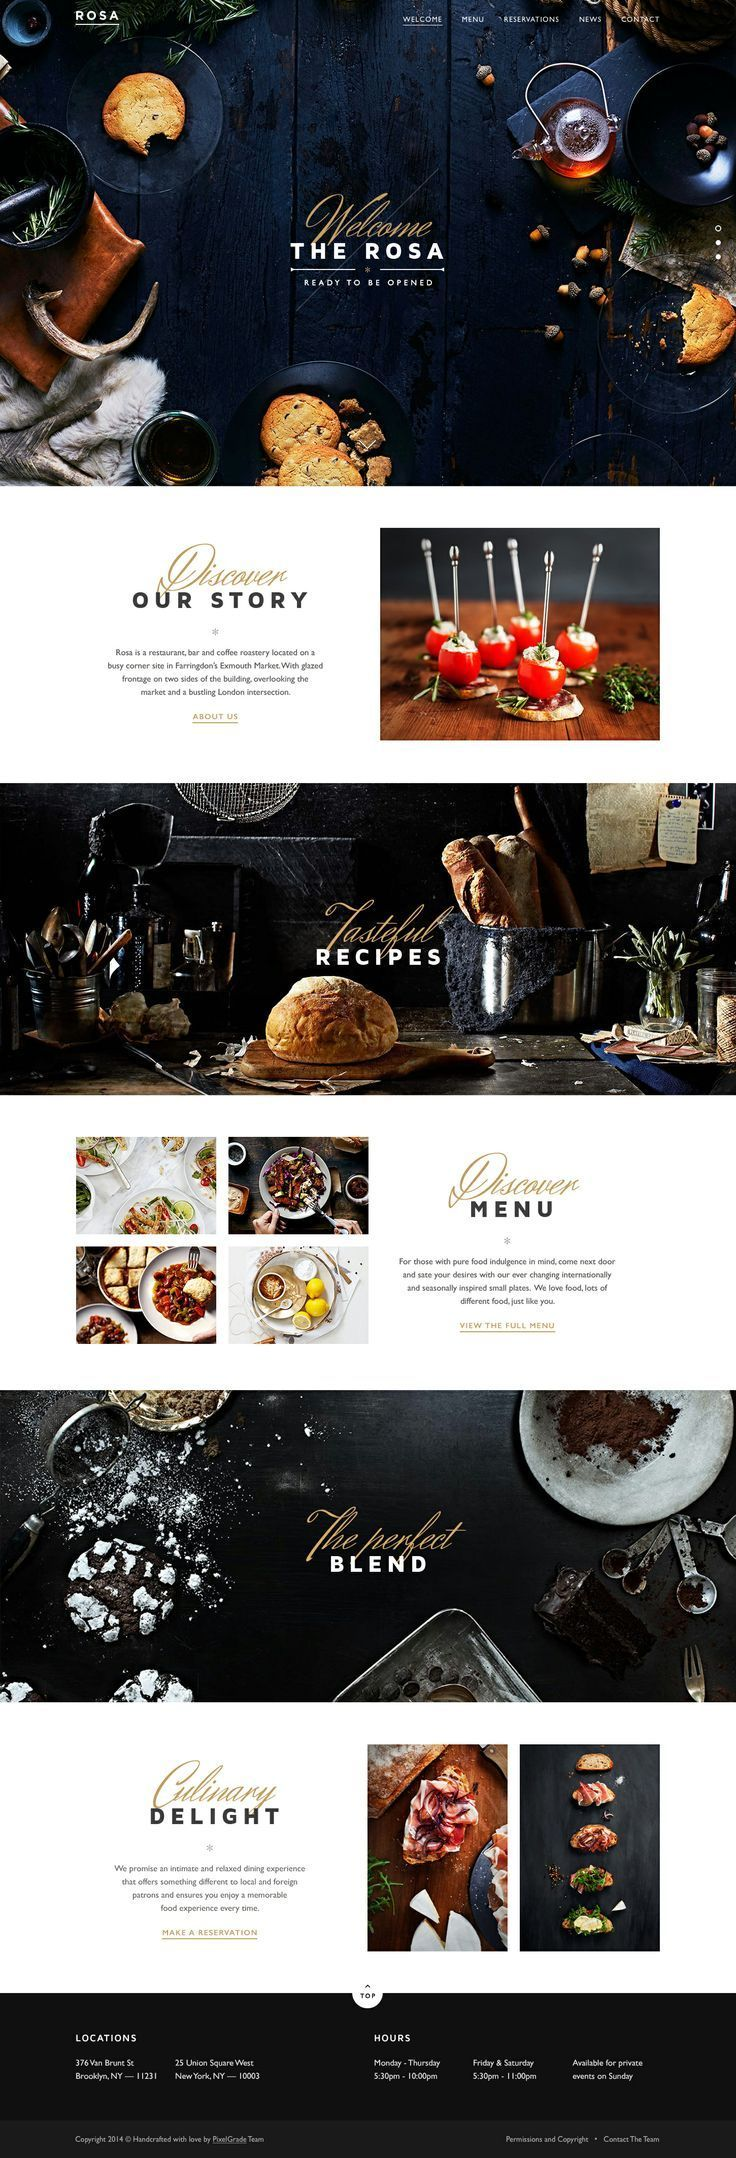 Poster design inspiration 2017 - 40 Trendy Website Designs For Your Inspiration